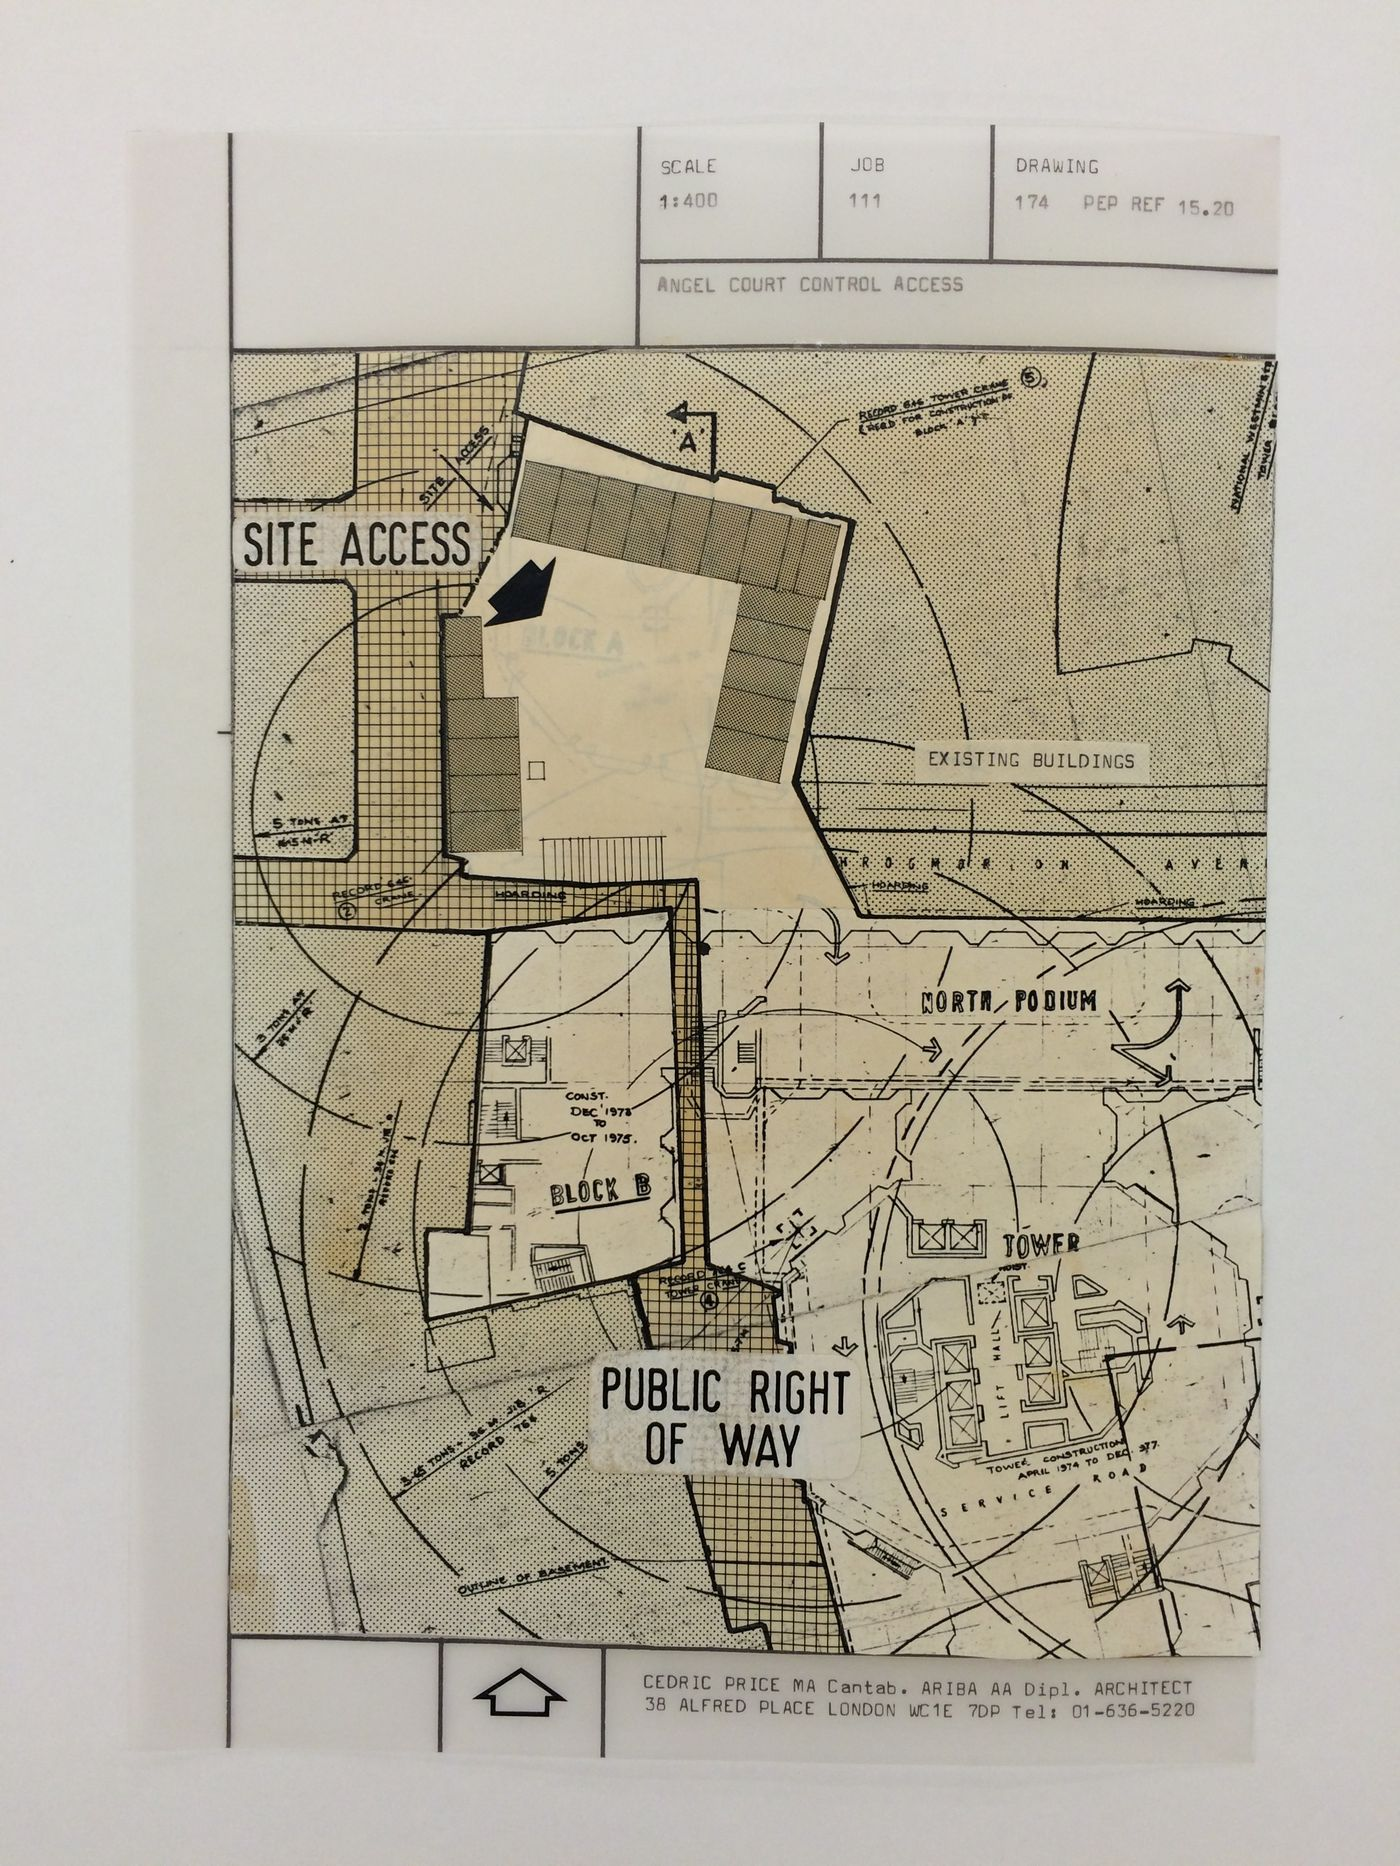 McAppy: site plan showing Angel Court control access